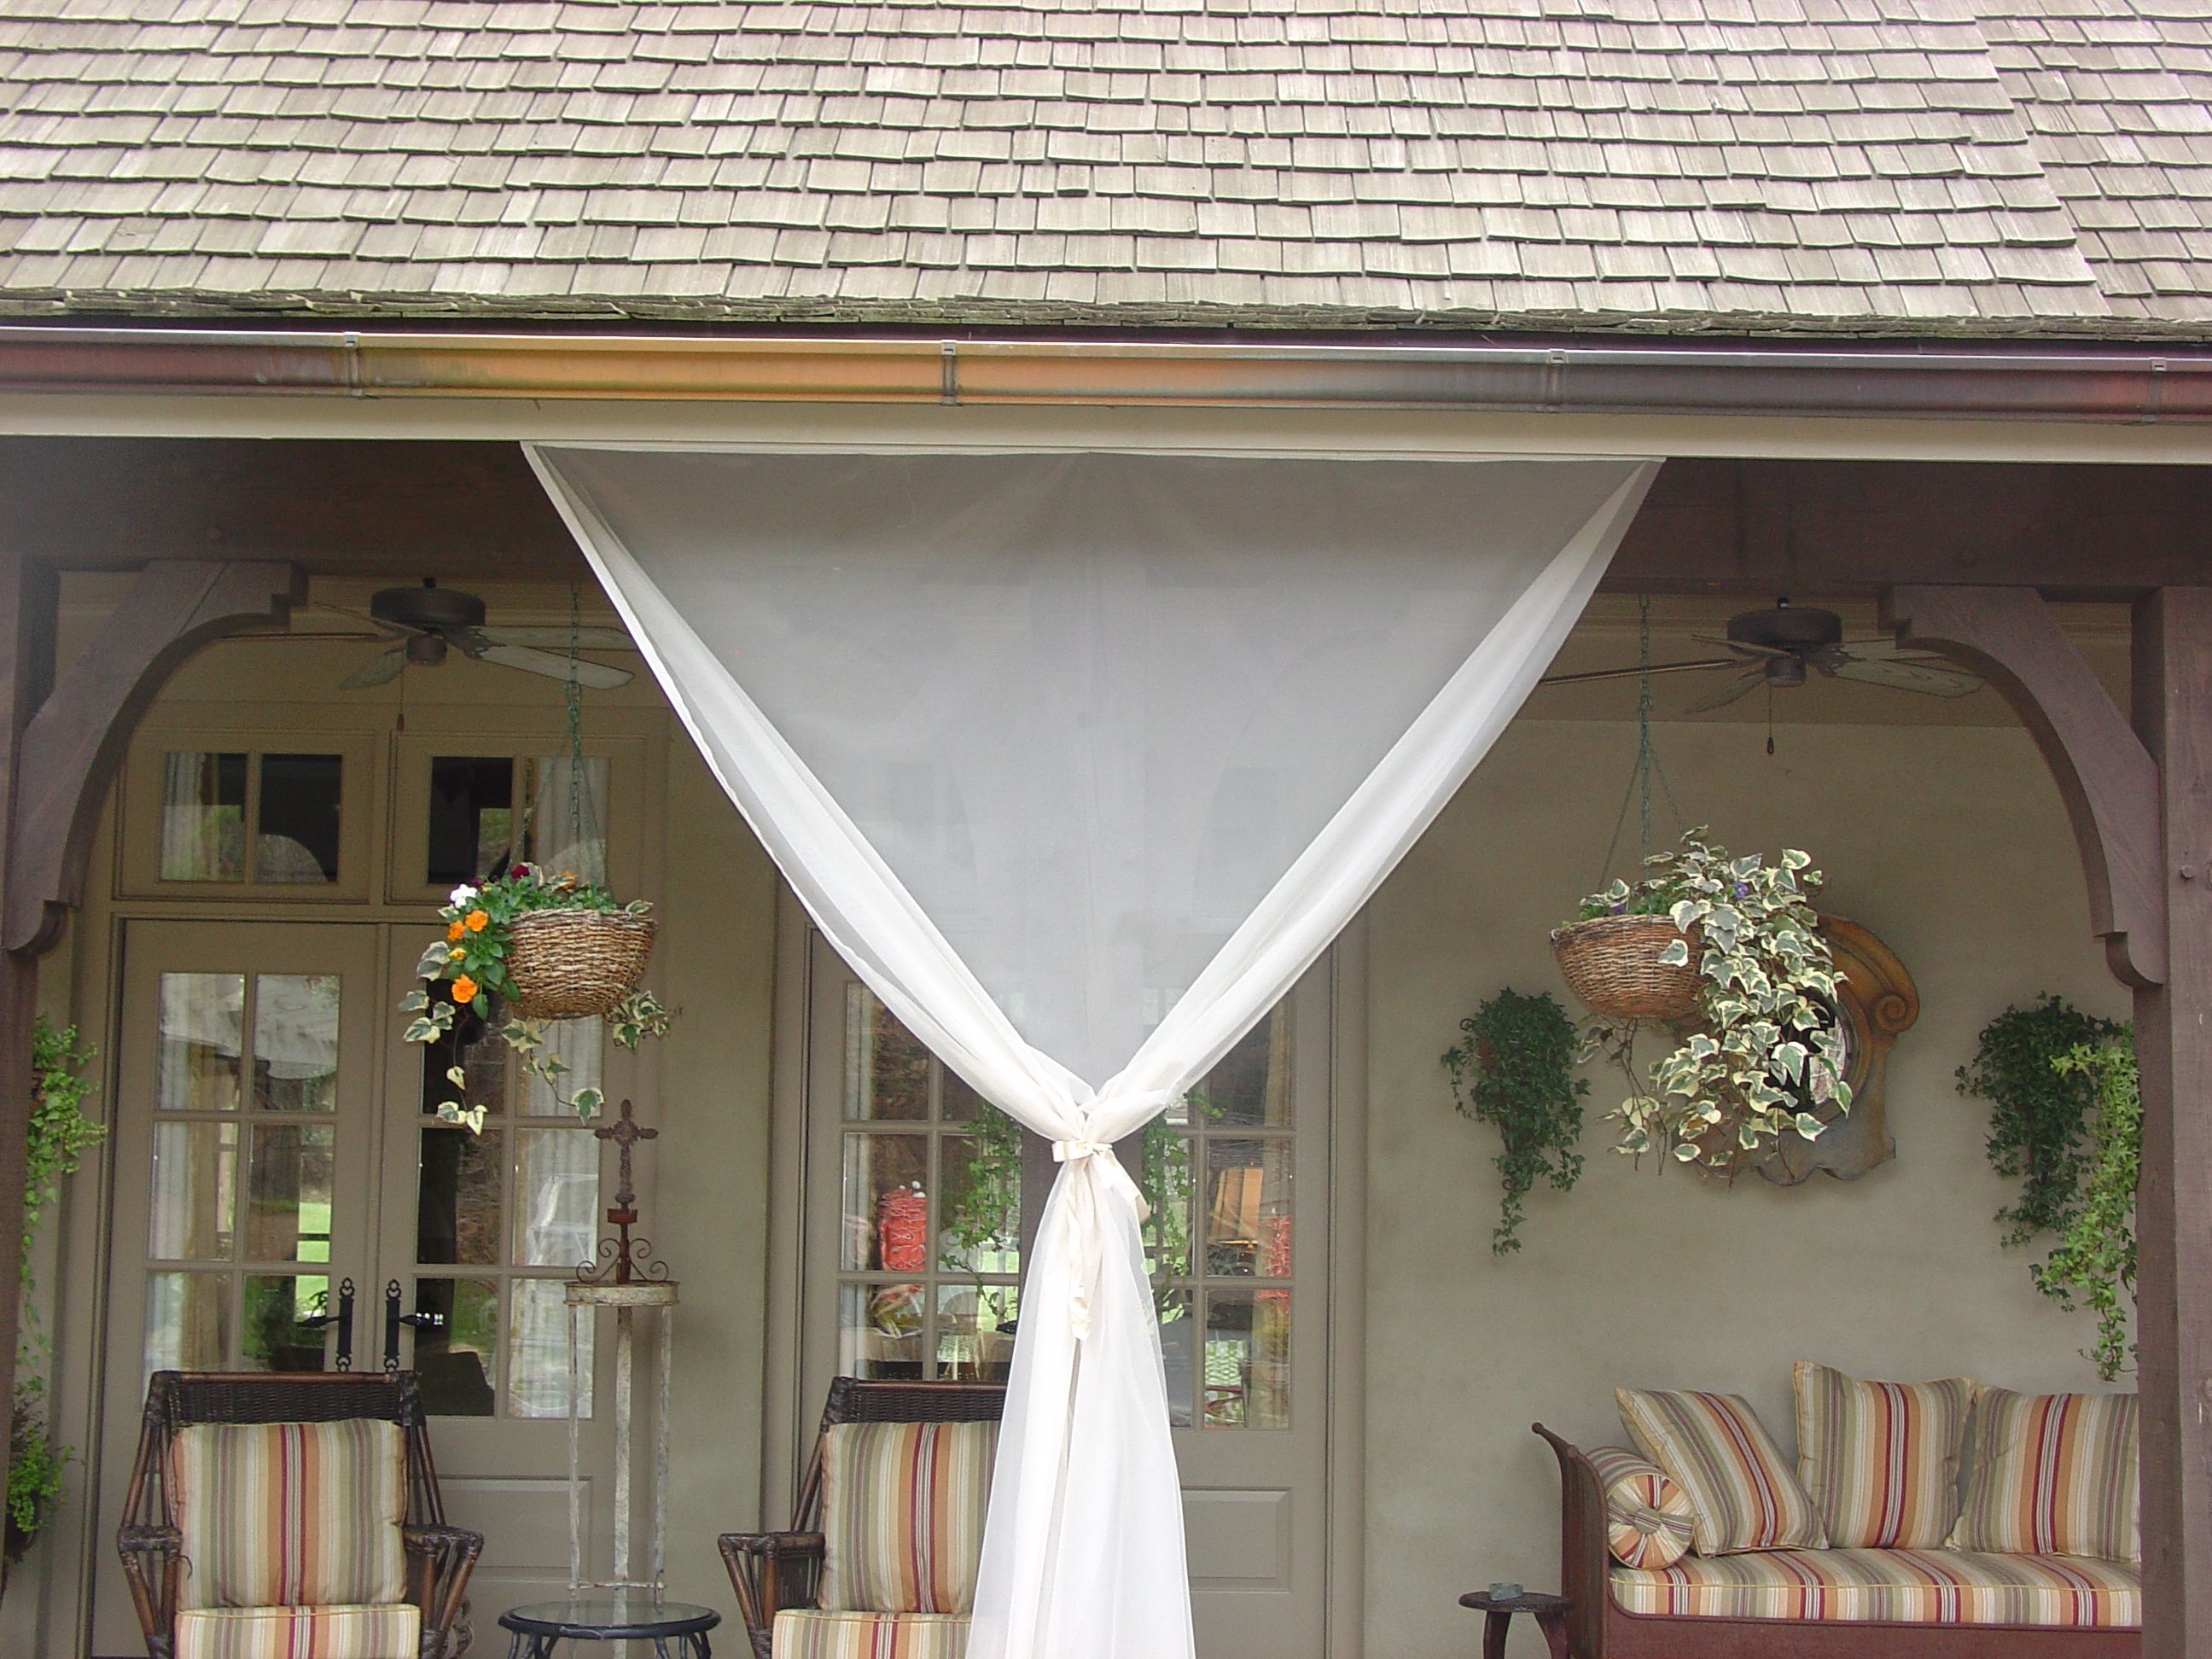 Retractable Mosquito Netting Curtains By DIY Project That Is Affordable Effective And Beautiful